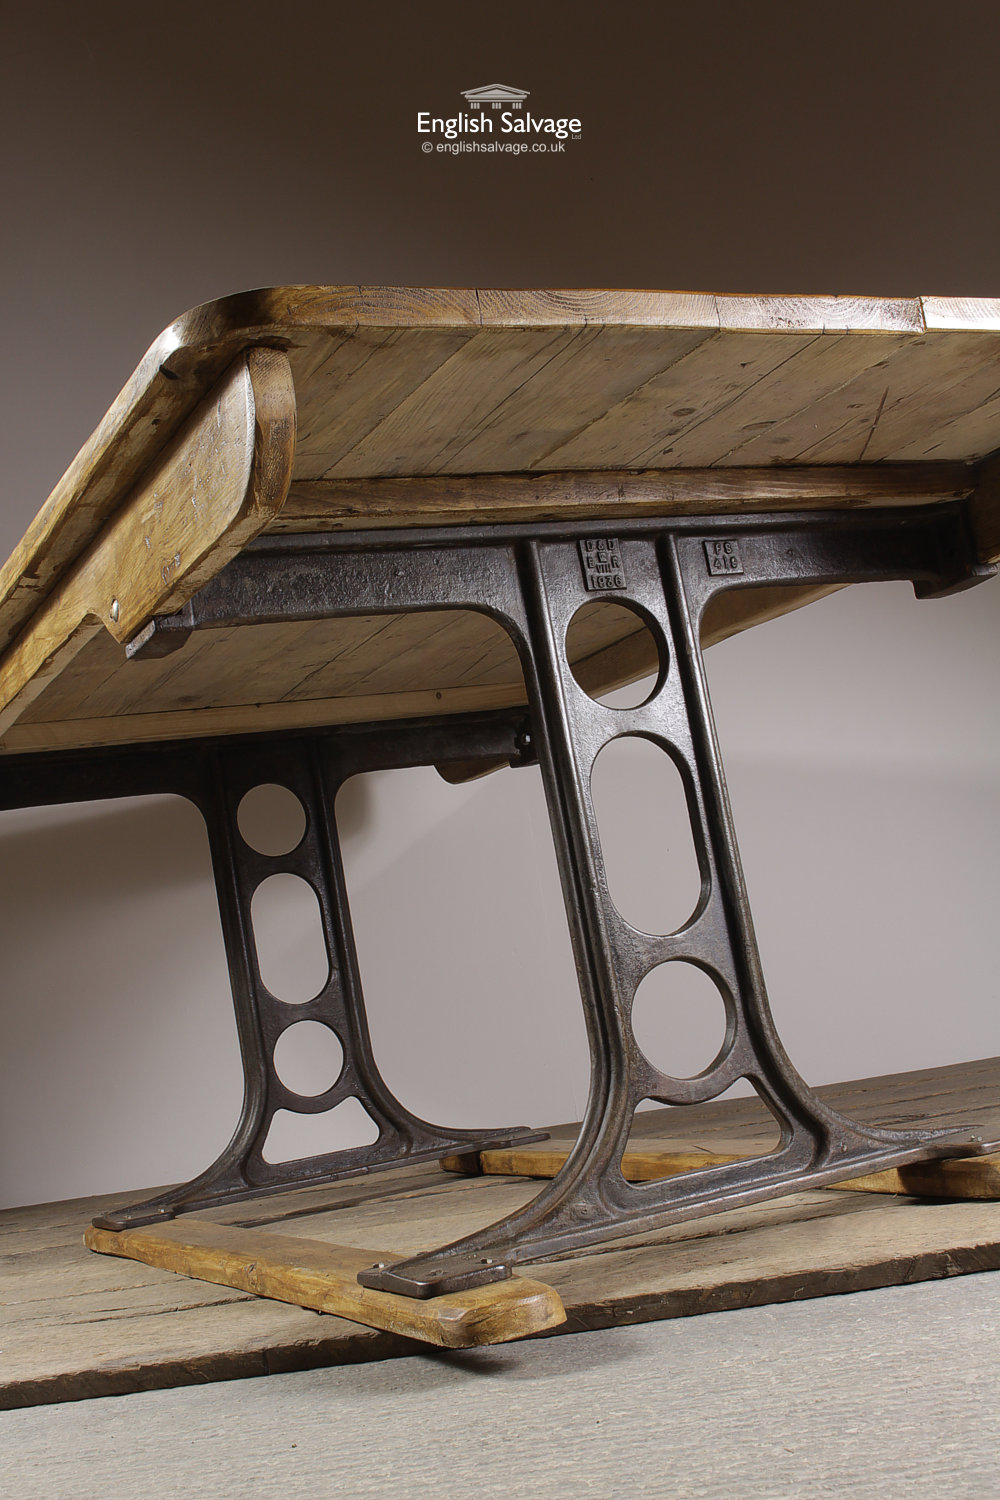 Salvaged Wooden Table With Cast Iron Legs